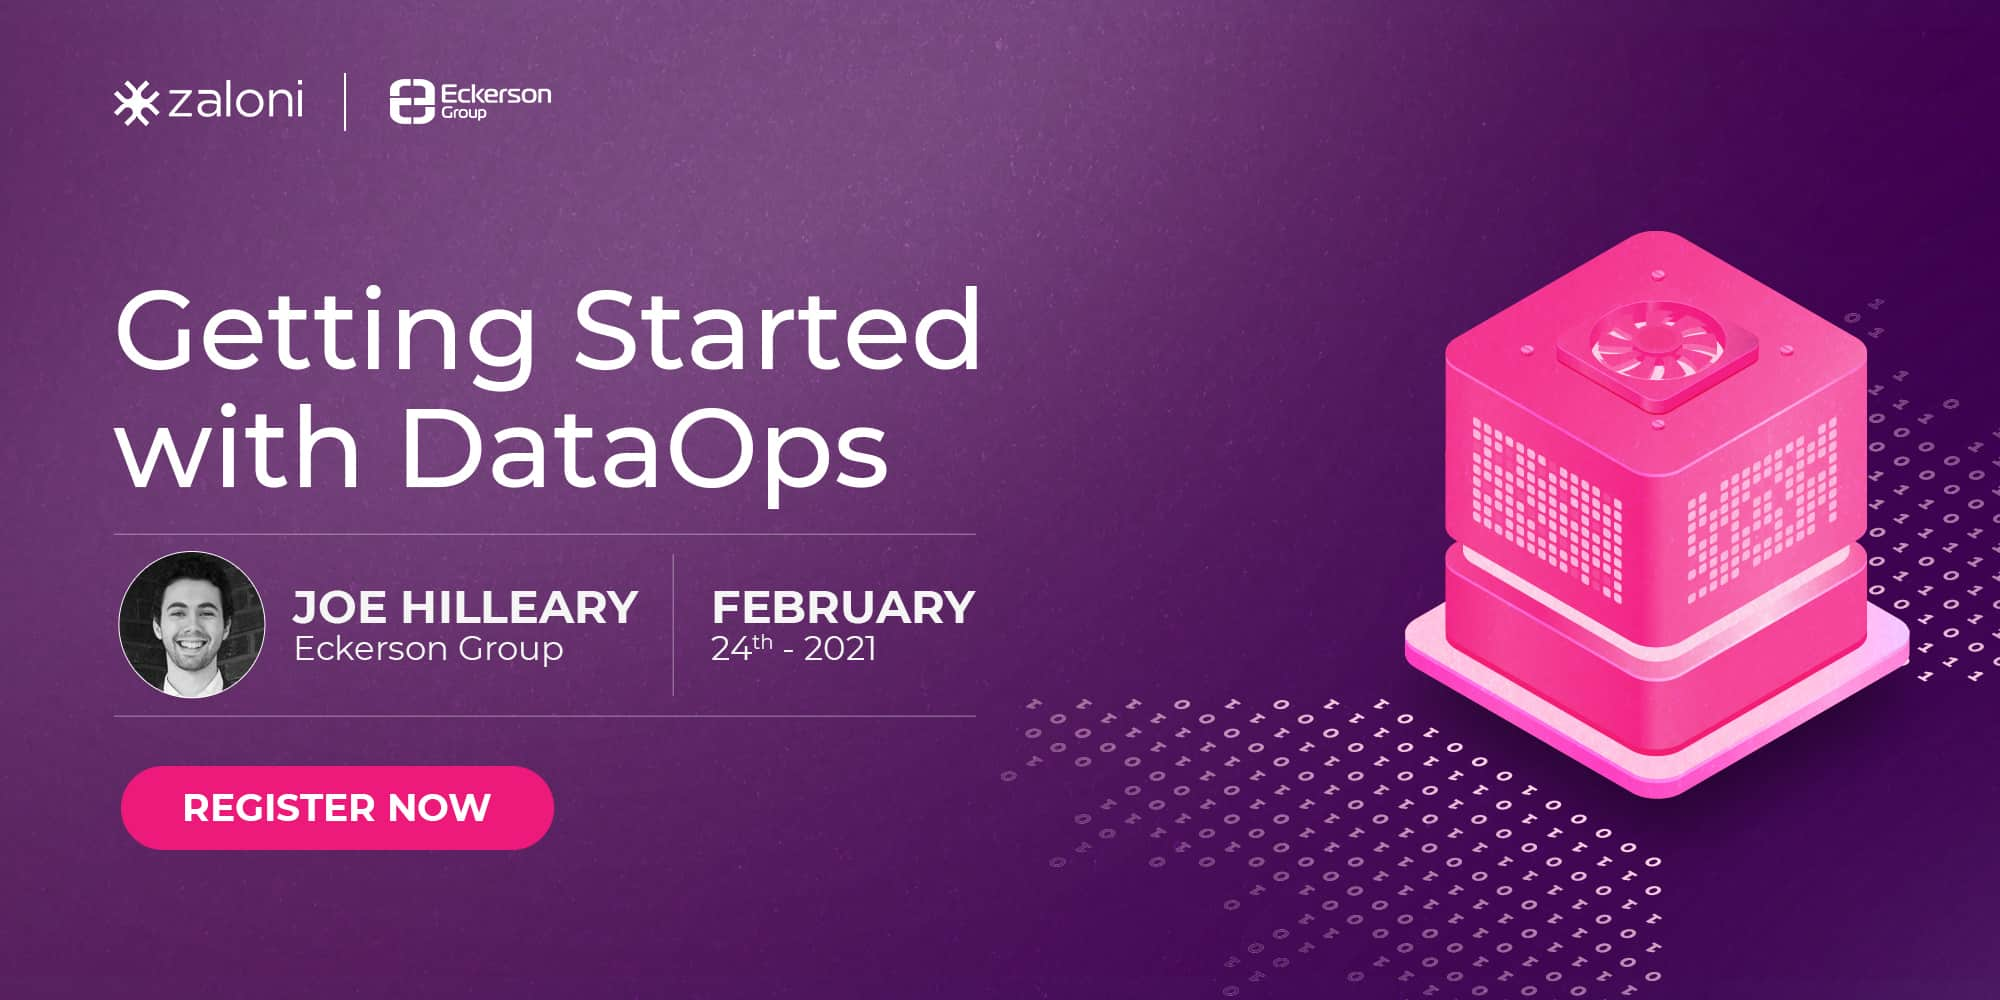 Getting Started with DataOps with Eckerson Group